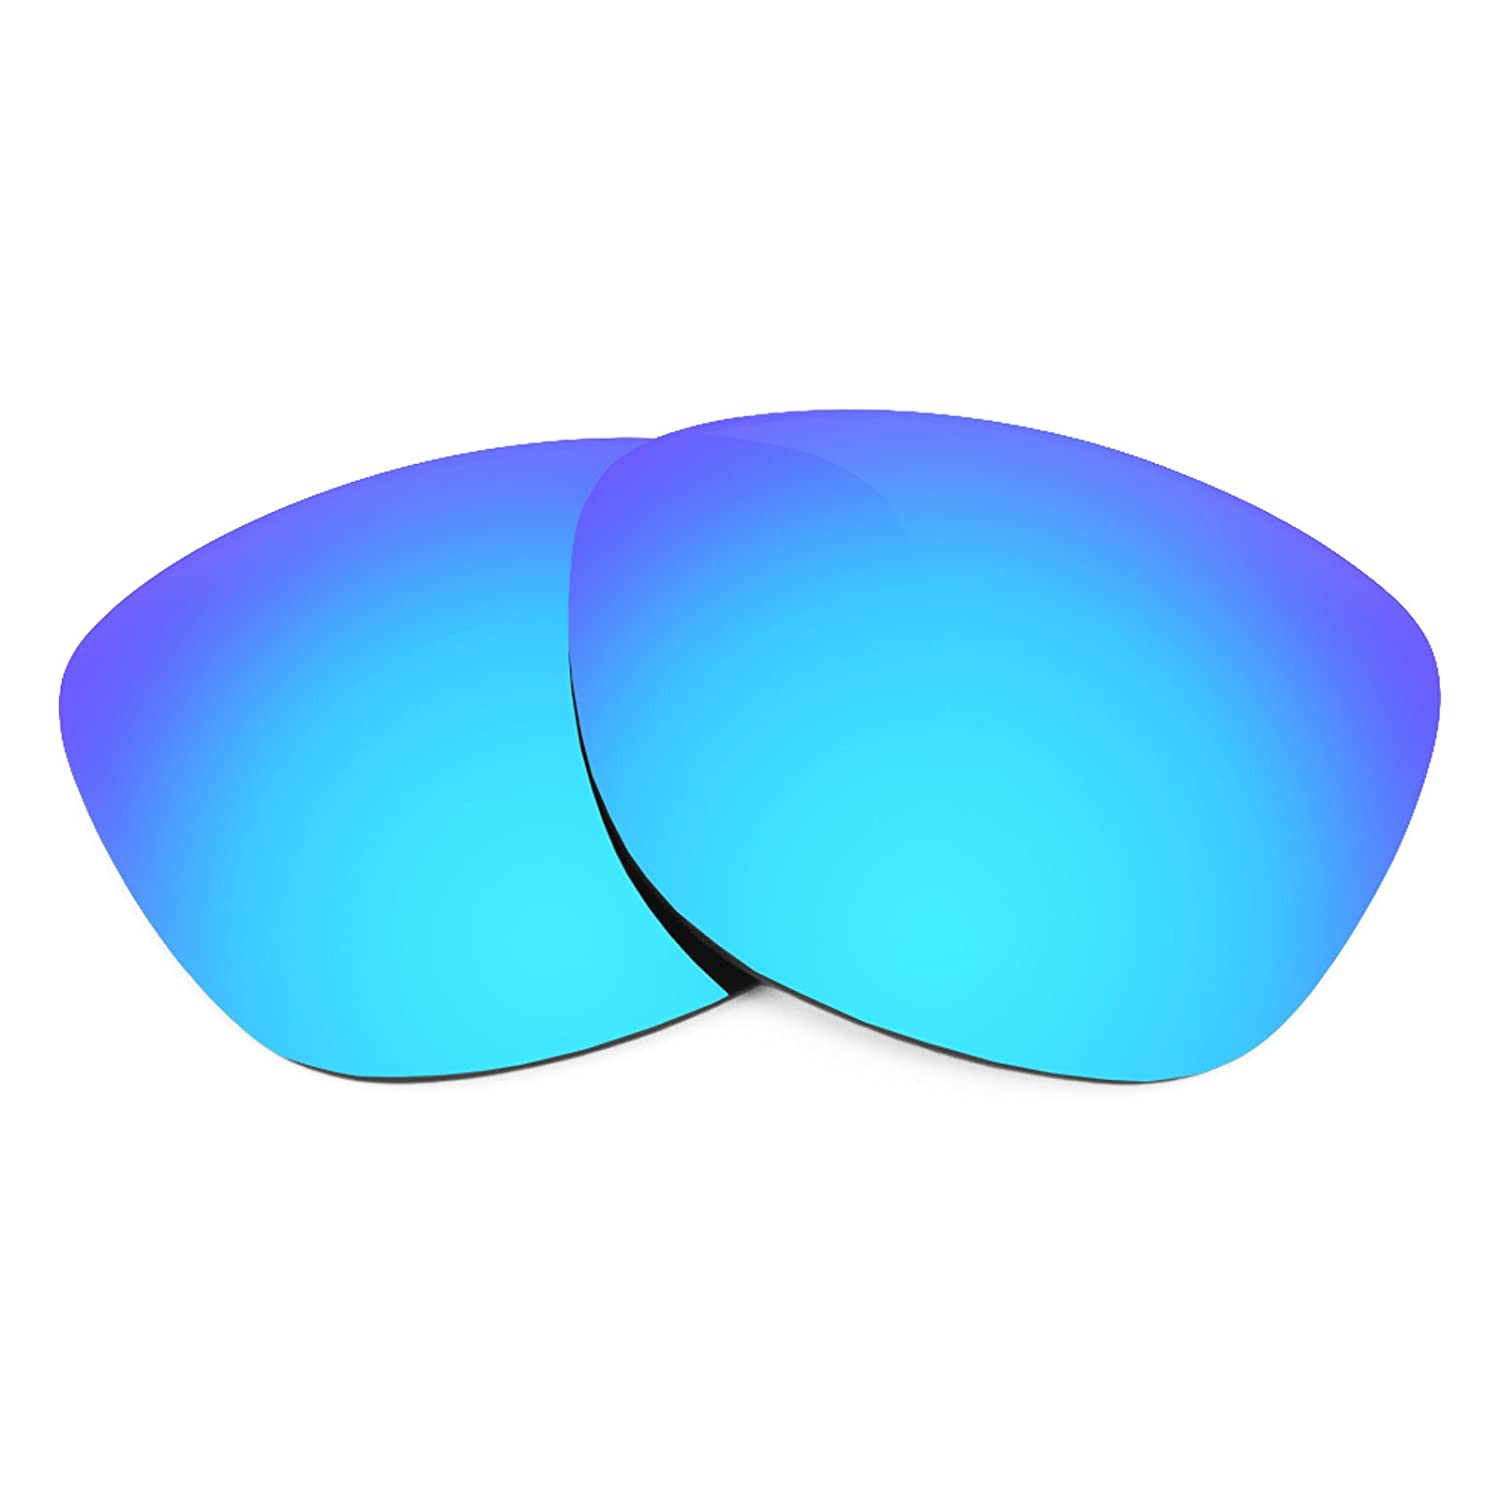 bfc5b4c691 Revant Polarized Replacement Lenses for Oakley Frogskins LX Ice Blue  MirrorShield®  Amazon.ca  Sports   Outdoors